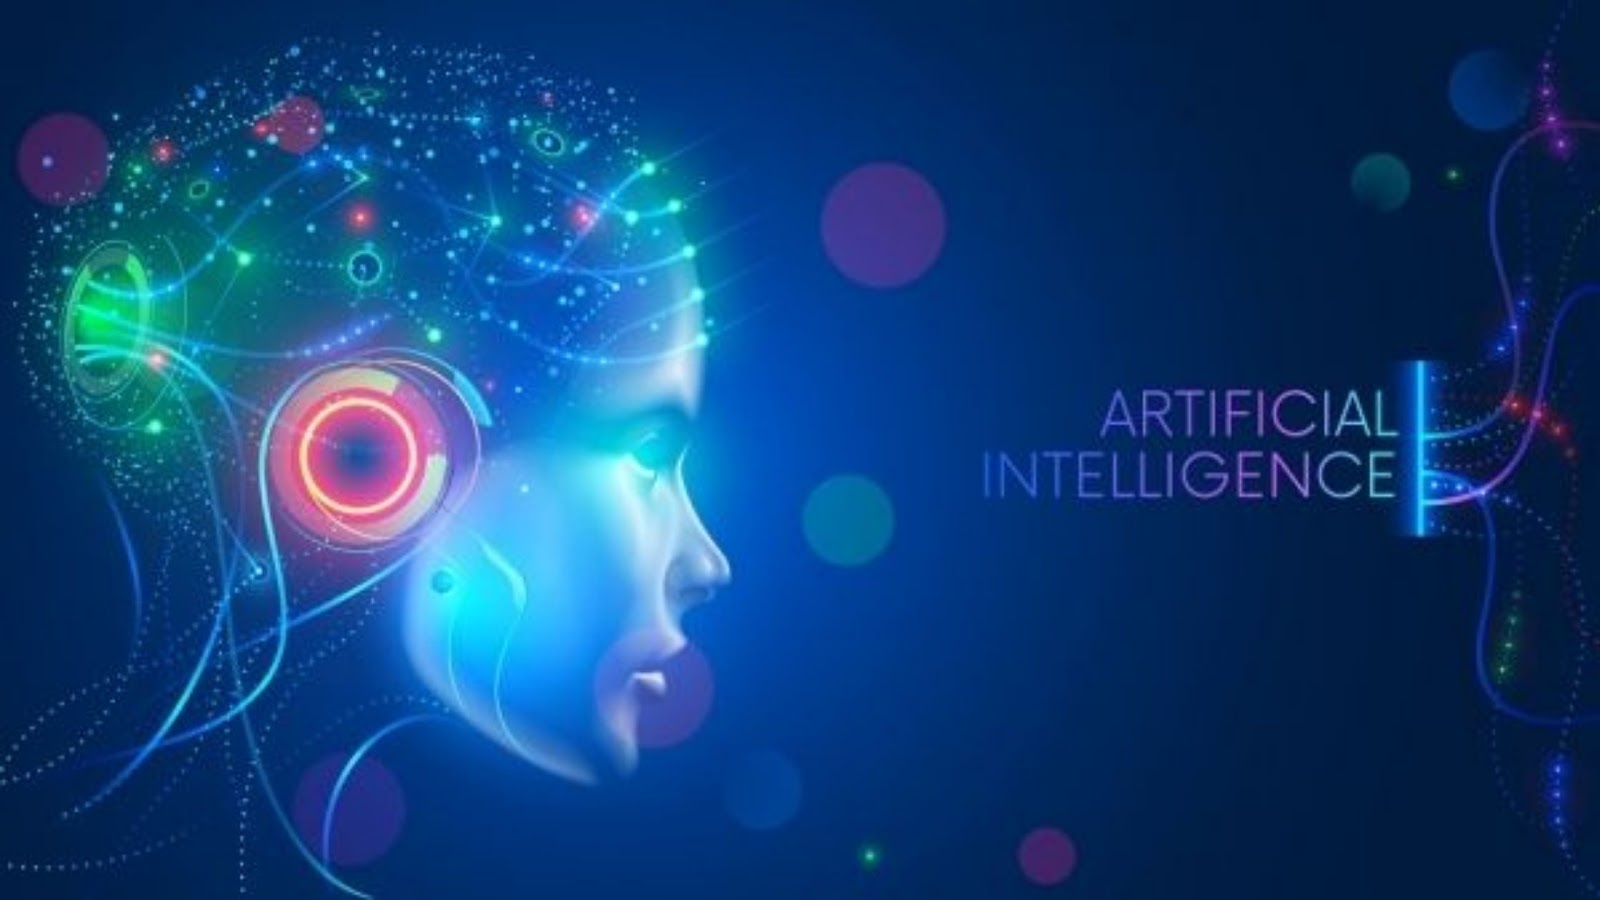 Construction the brain through artificial Intelligence